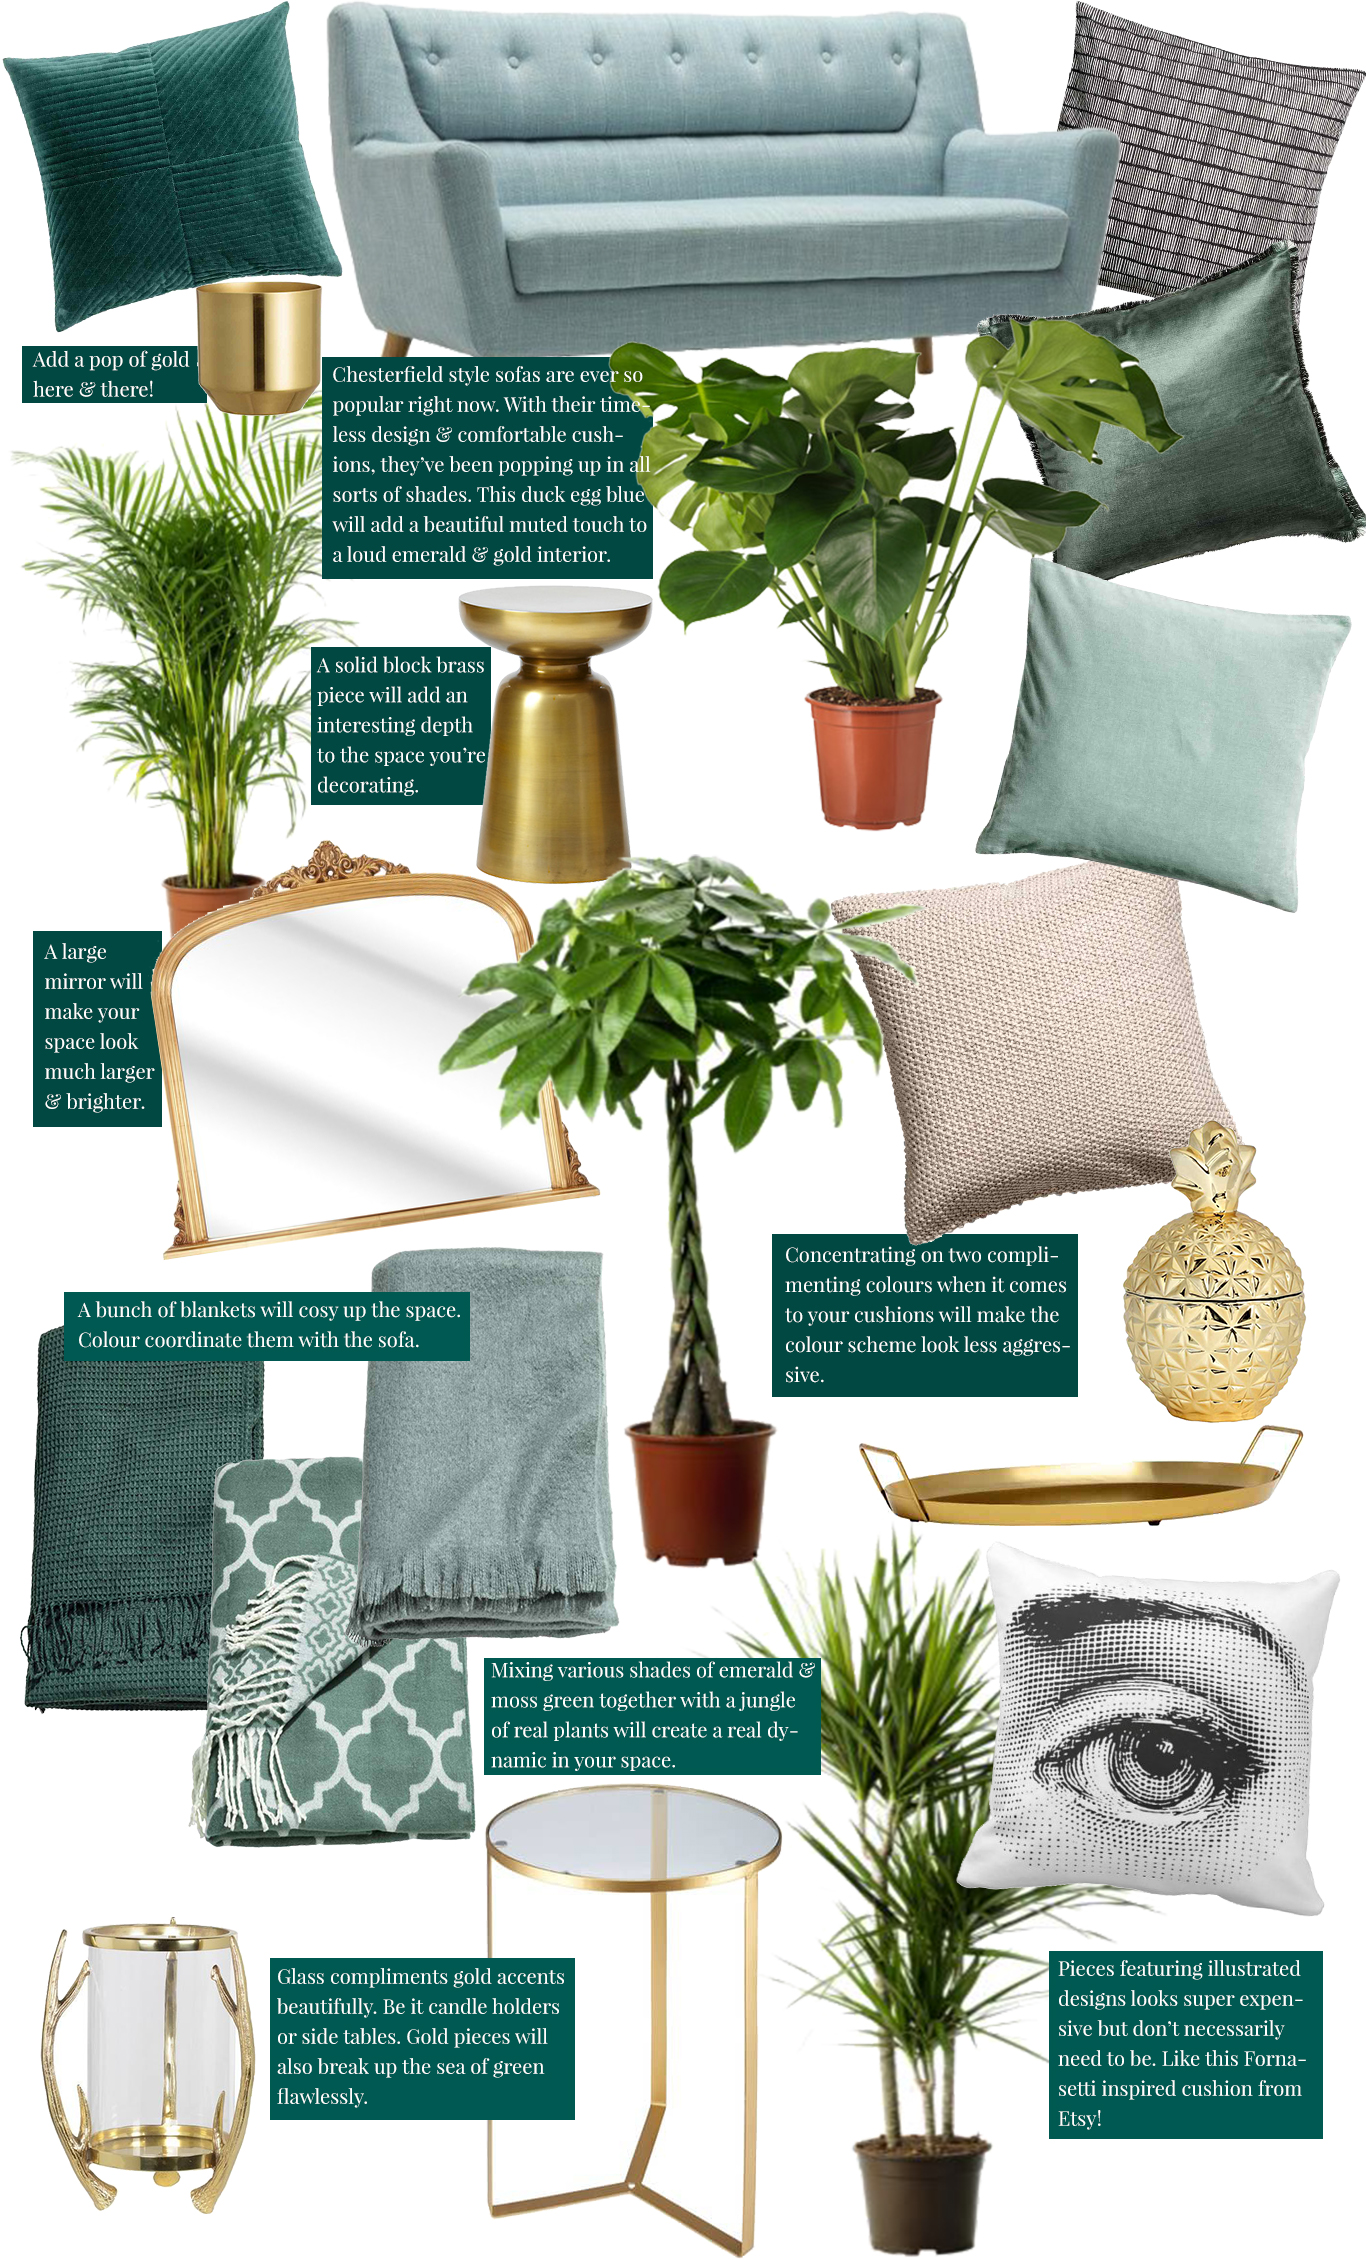 Recreate the Pin: Dark luxury & moss green